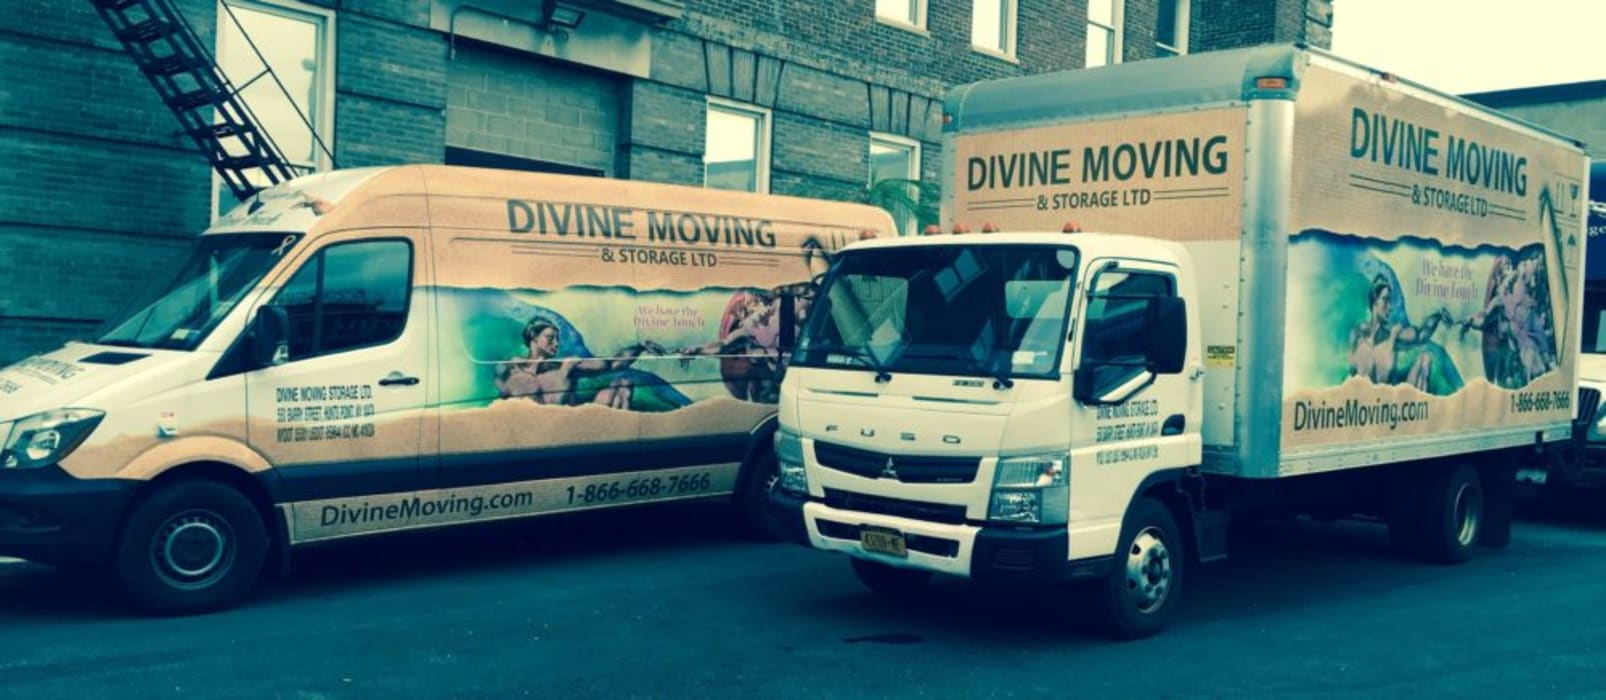 Divine Moving and Storage NYC Car Dealerships